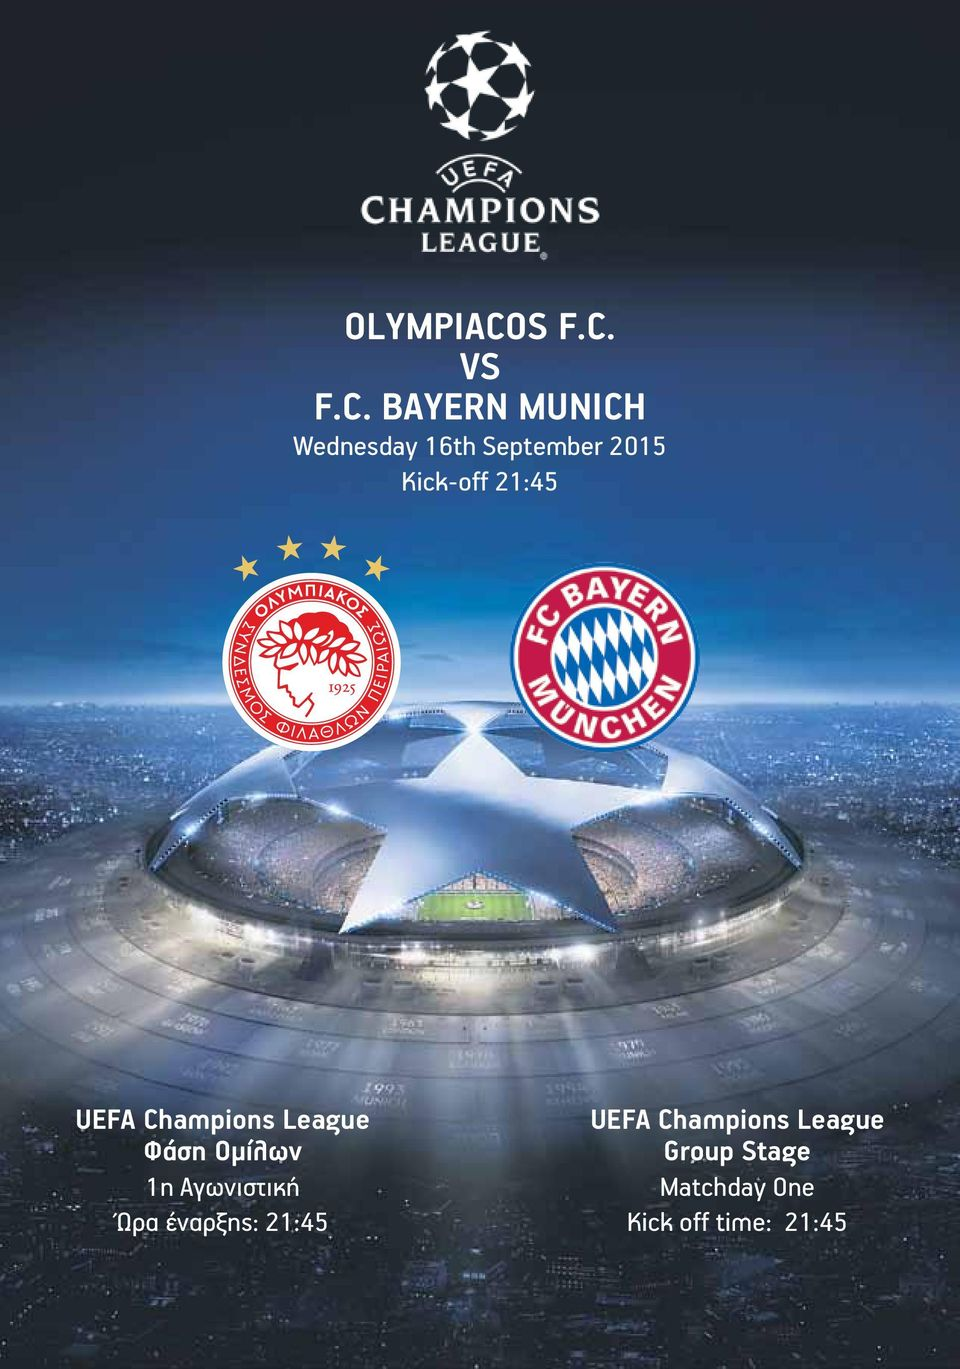 V BAYERN MUNICH Wednesday 16th September 2015 Kick-off